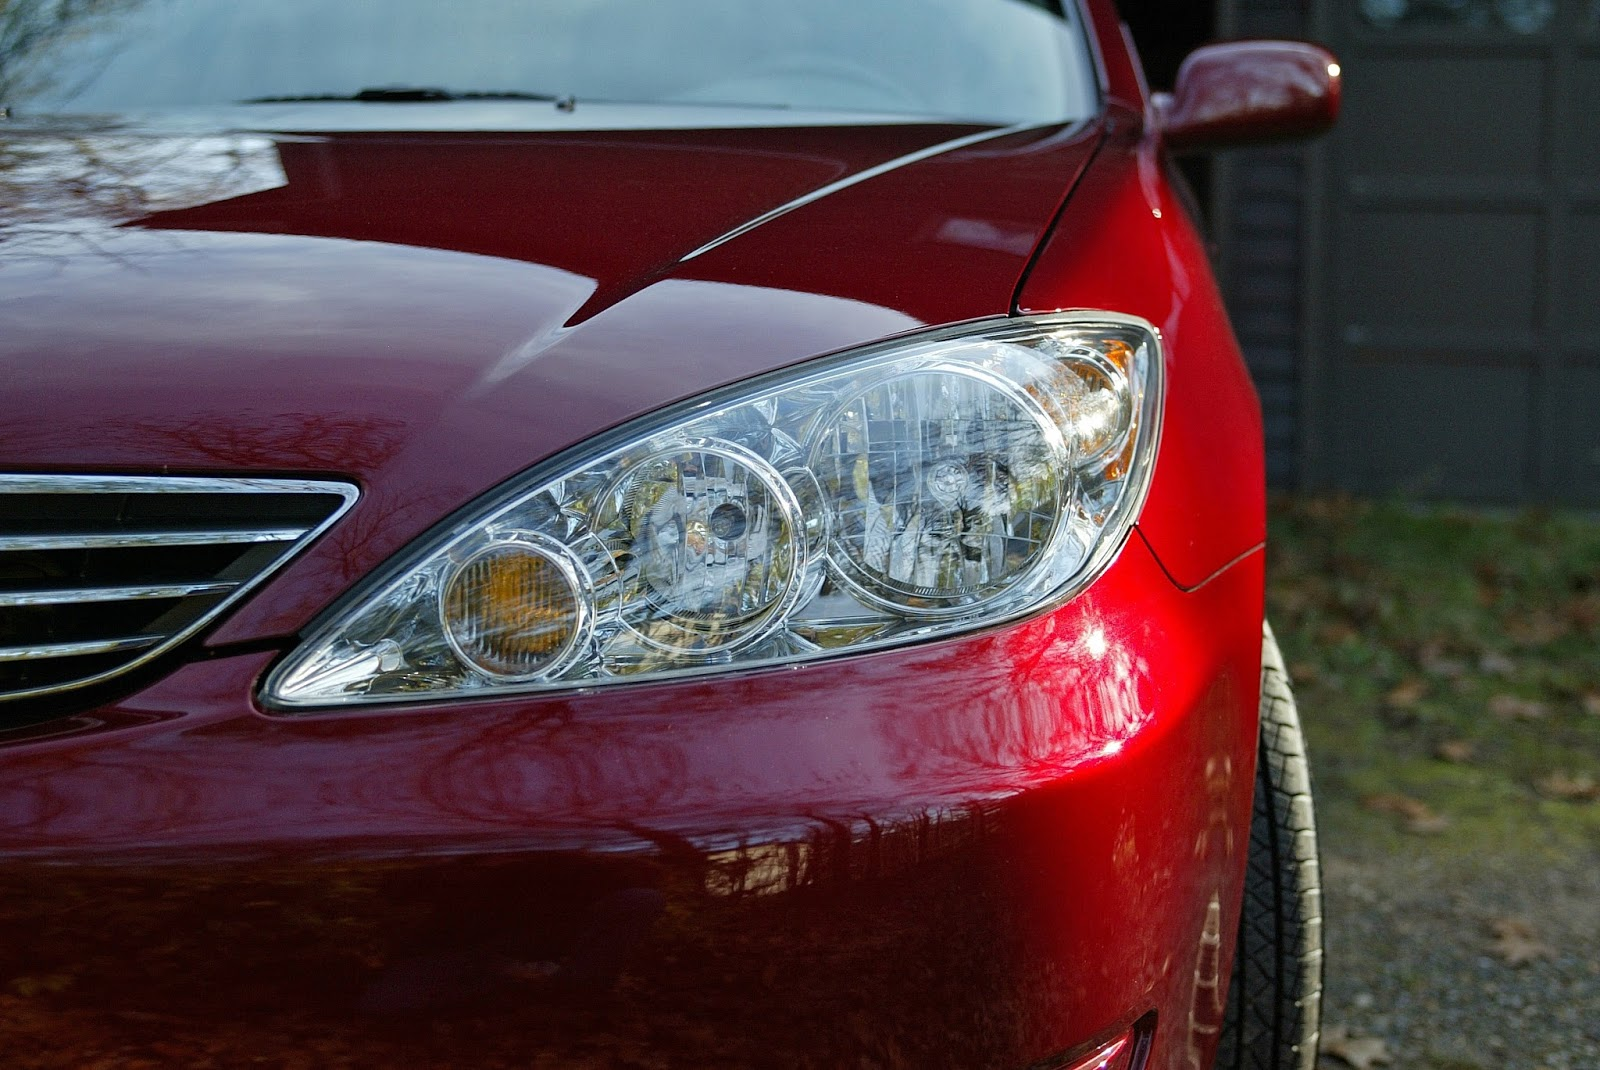 Budgeting properly helps car buyers avoid overspending